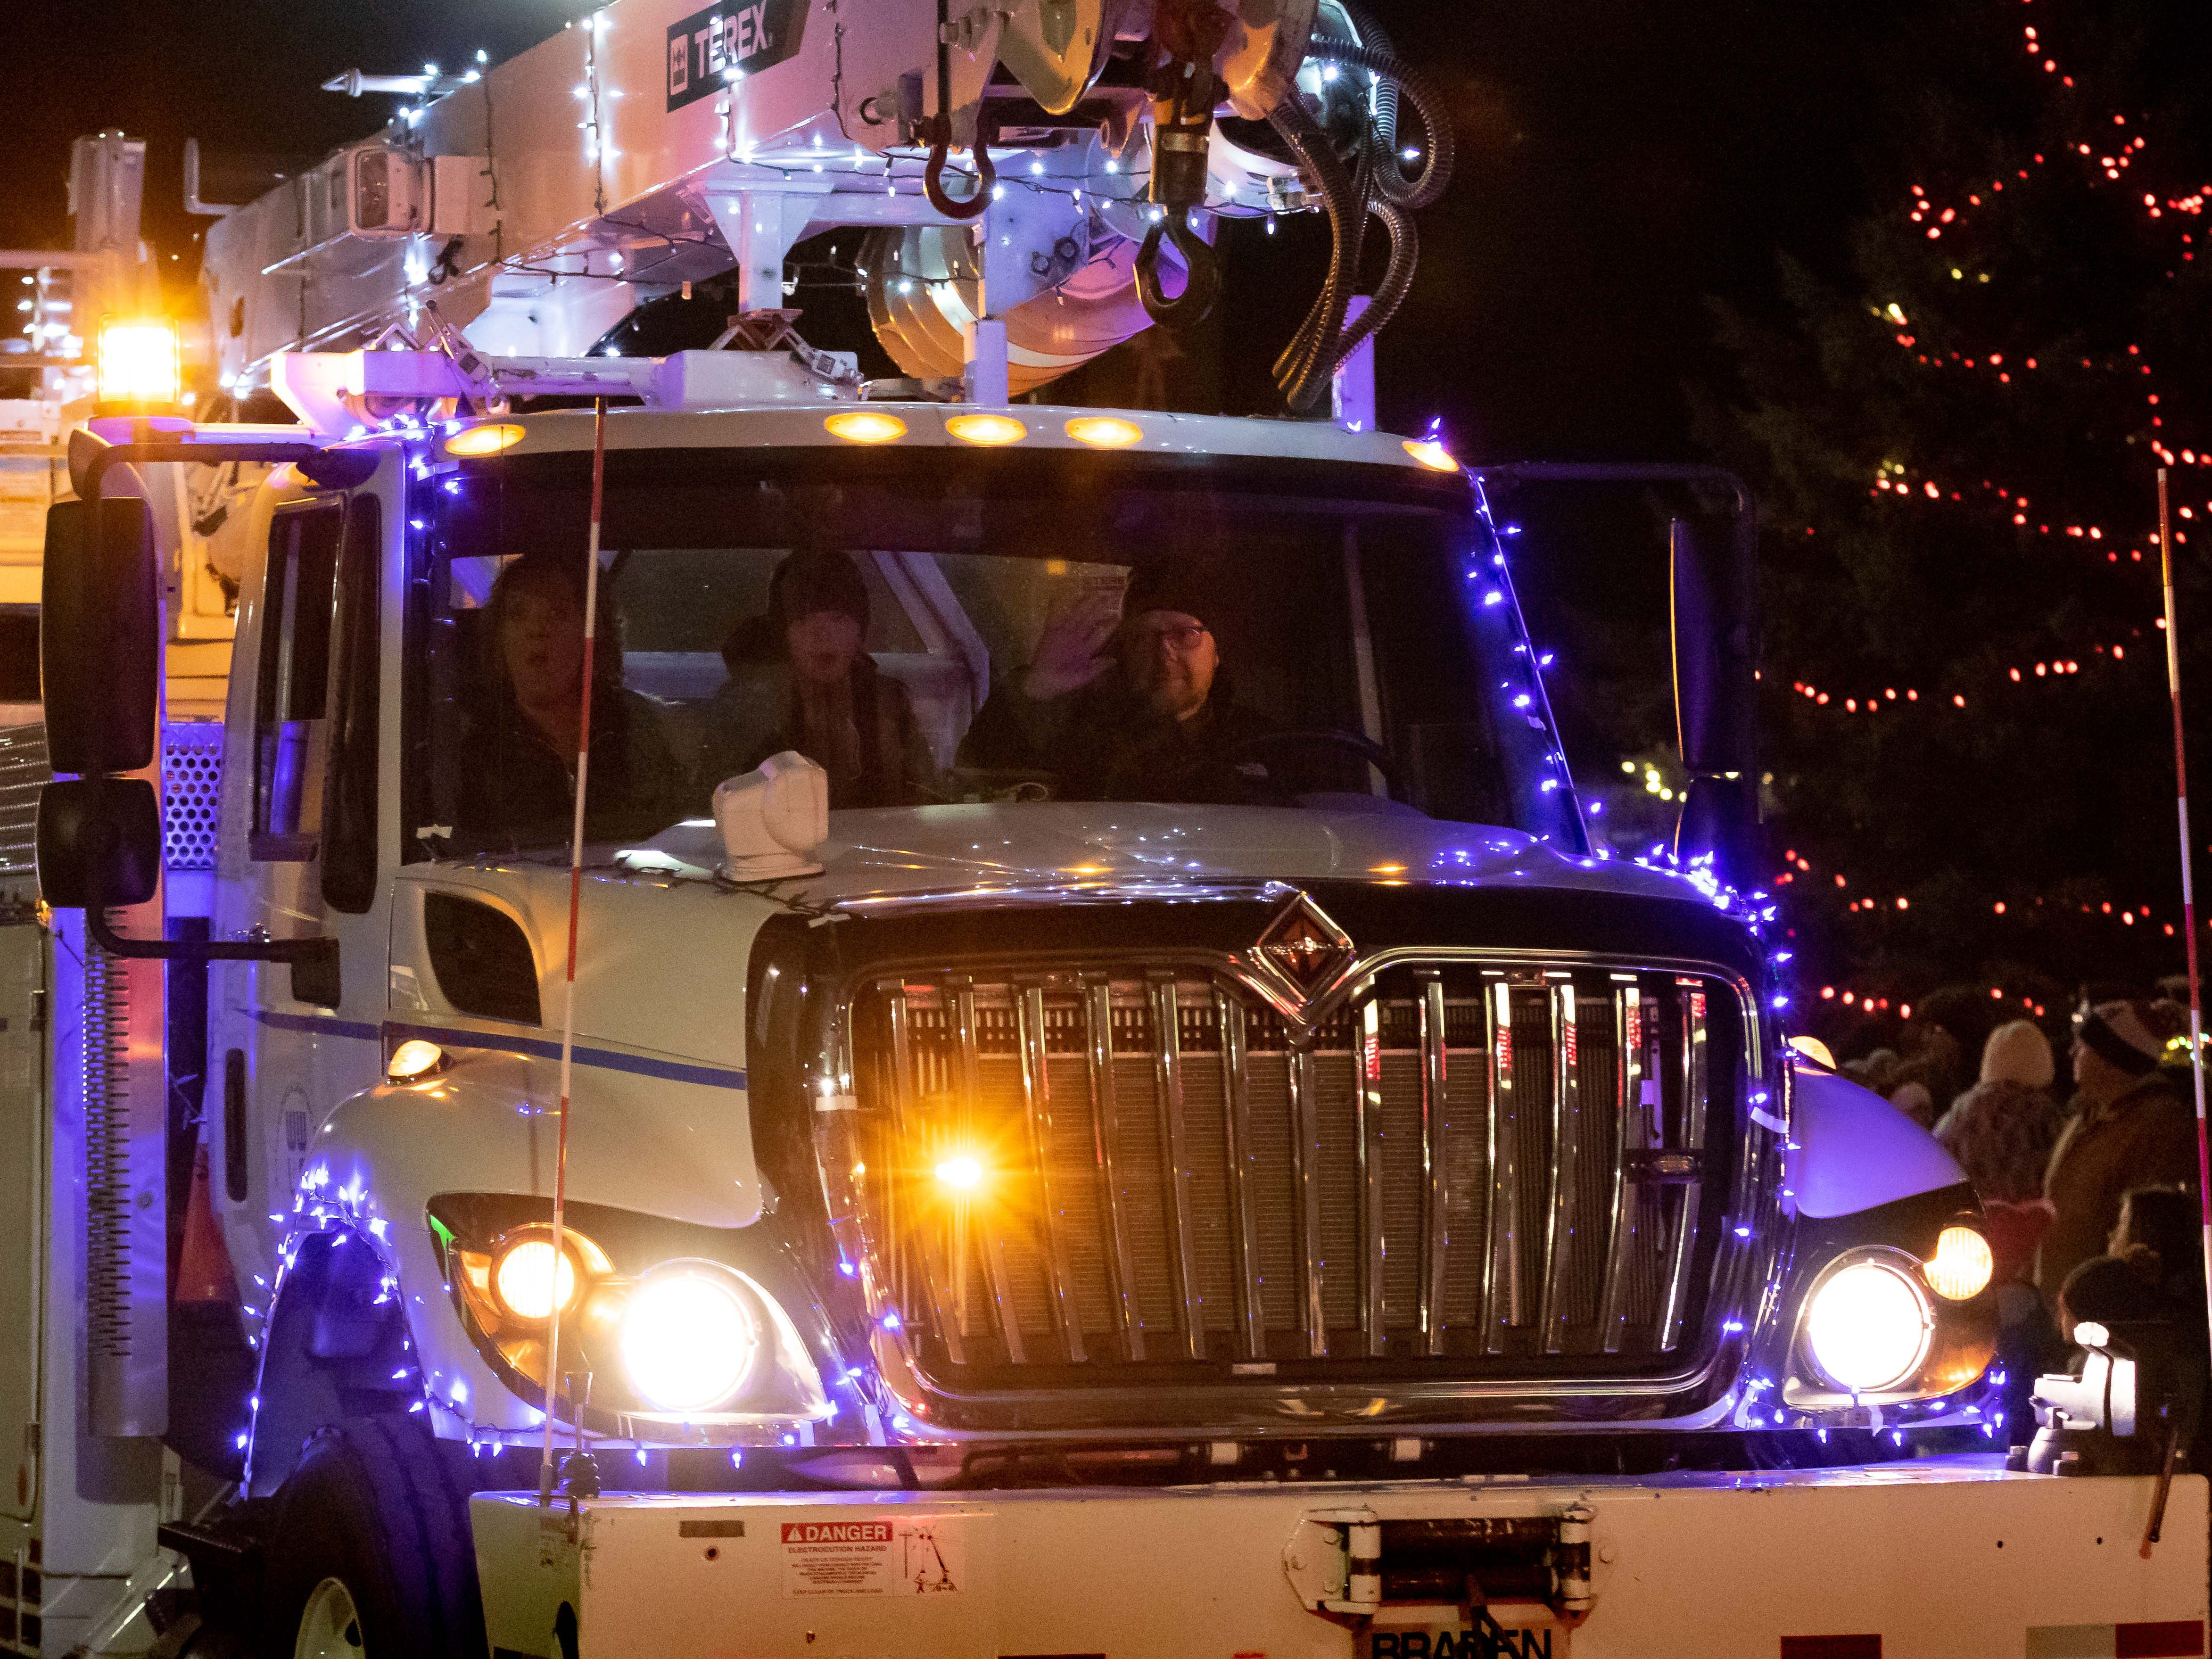 The Rekindle the Spirit holiday parade was held Wednesday, Nov. 21, 2018, in downtown Wisconsin Rapids.